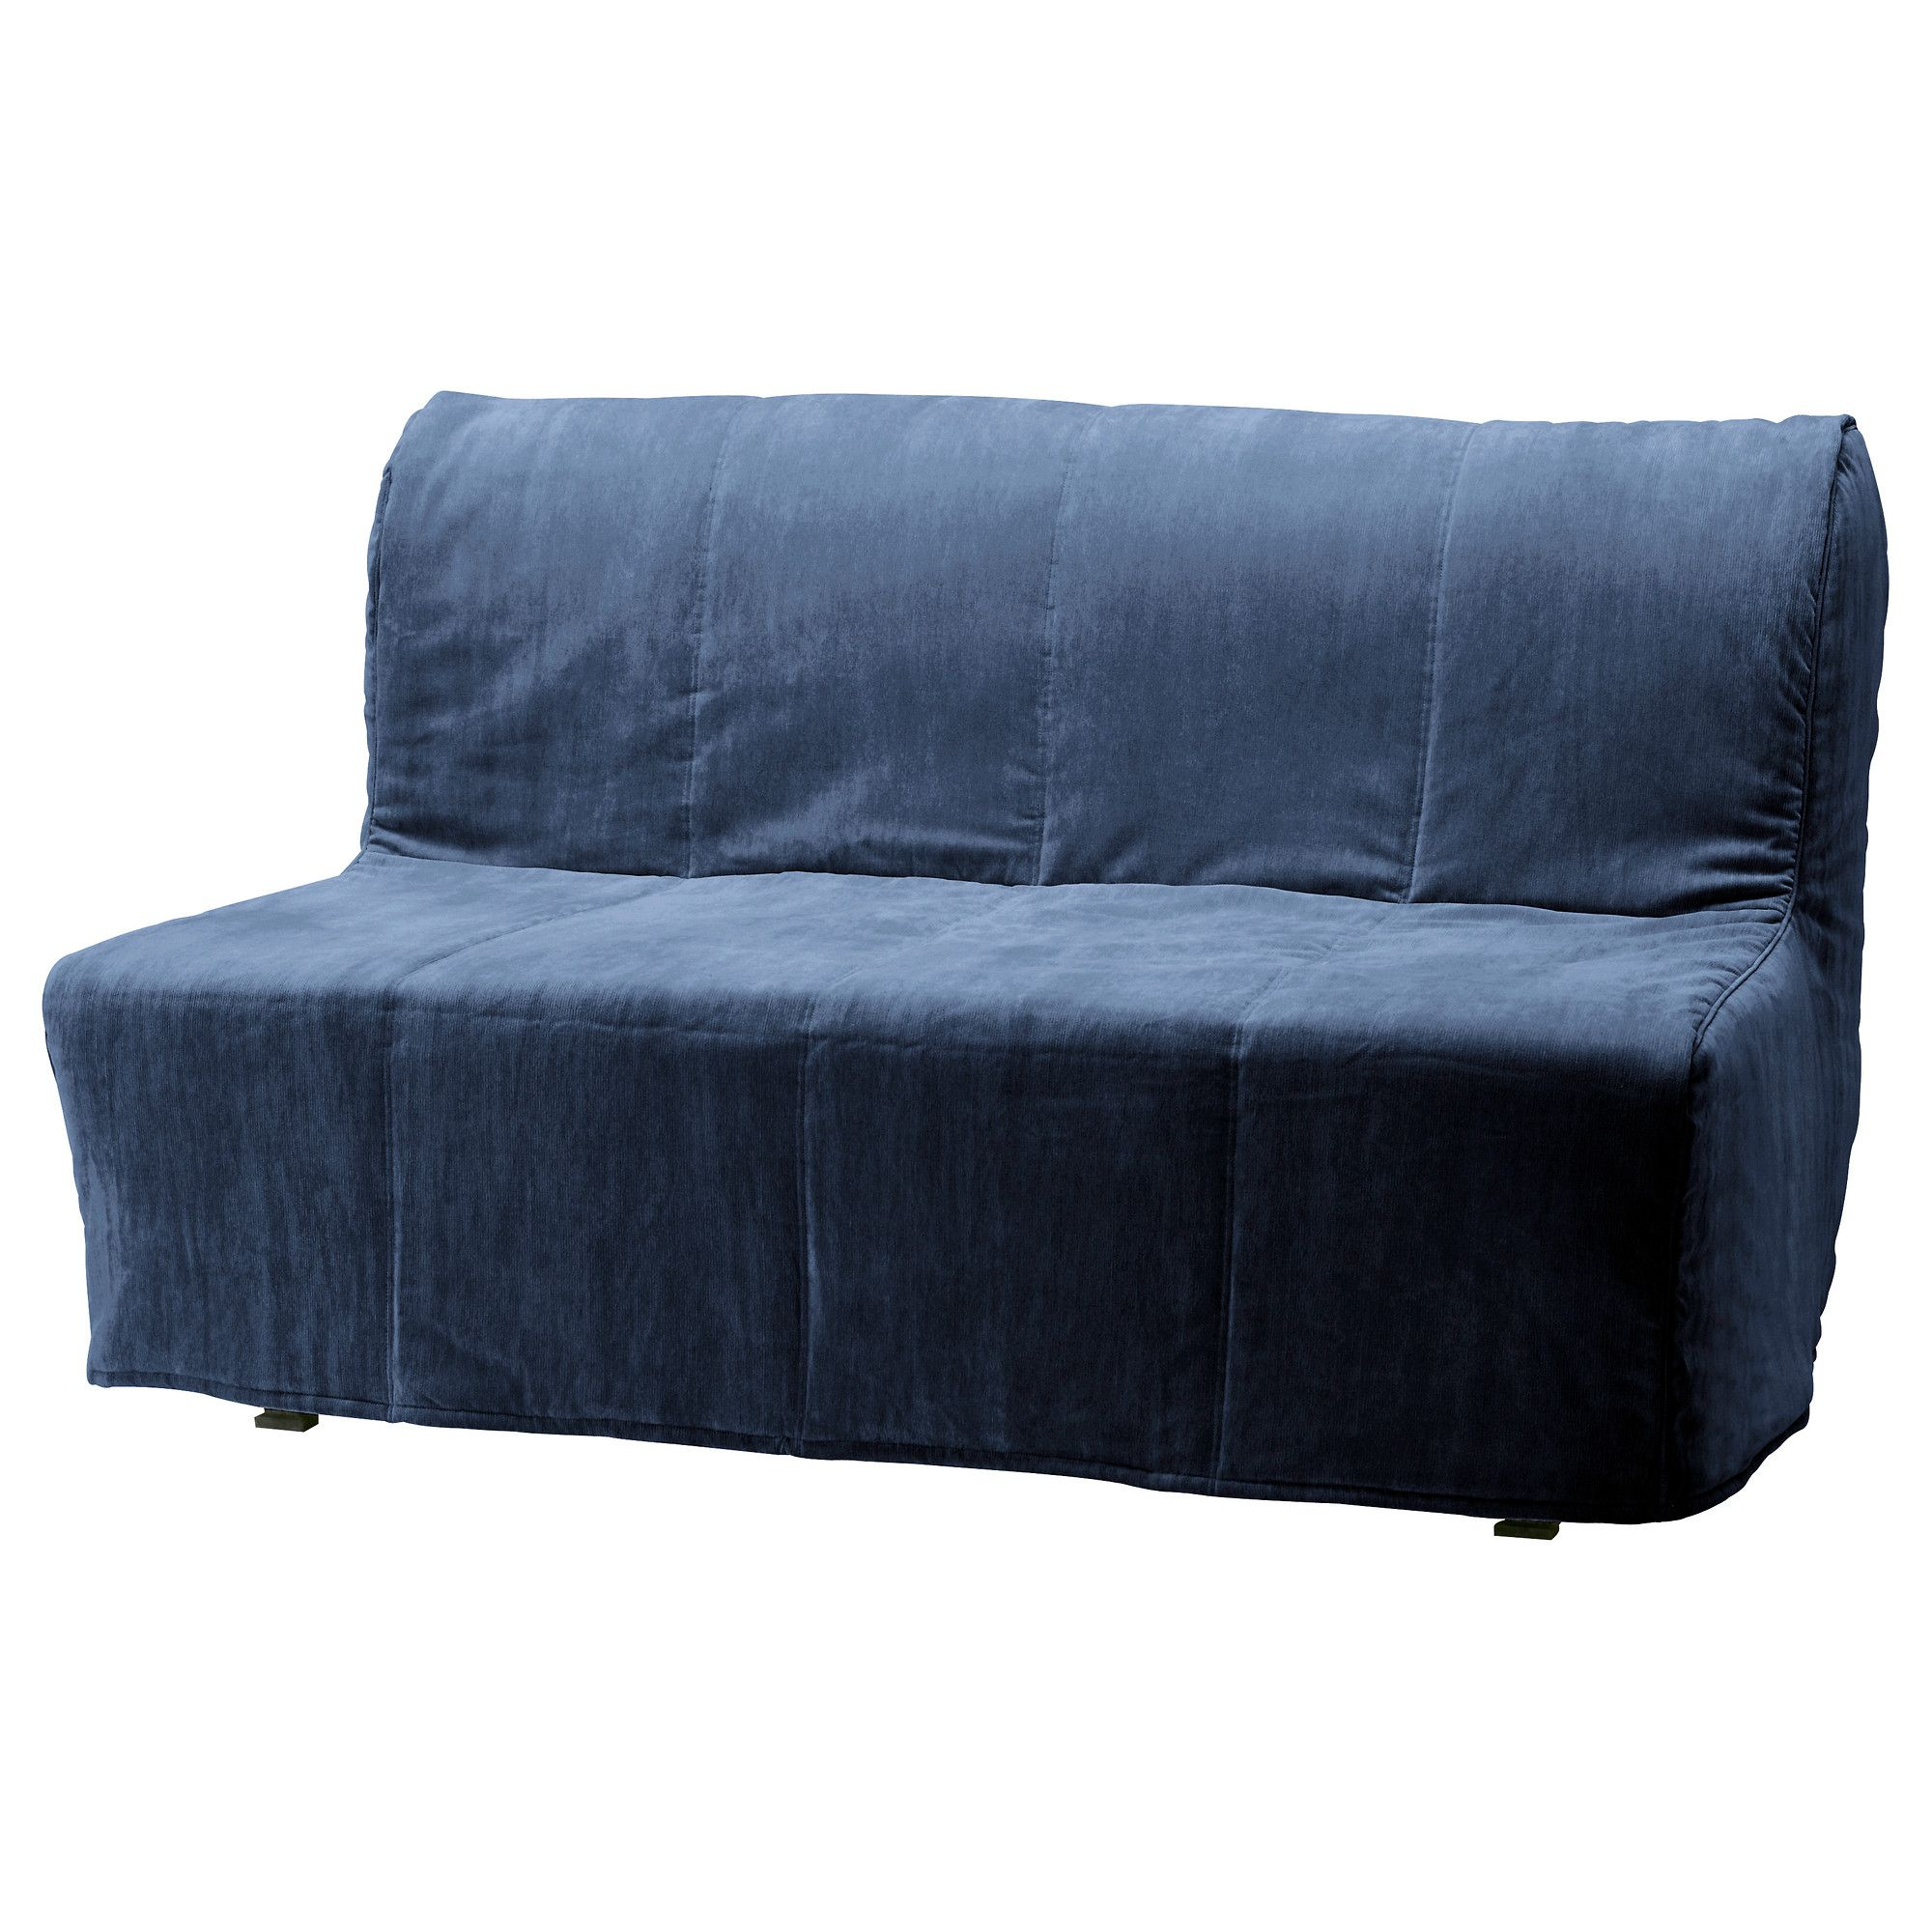 Bettsessel Lycksele Sofa Is 55 1 8